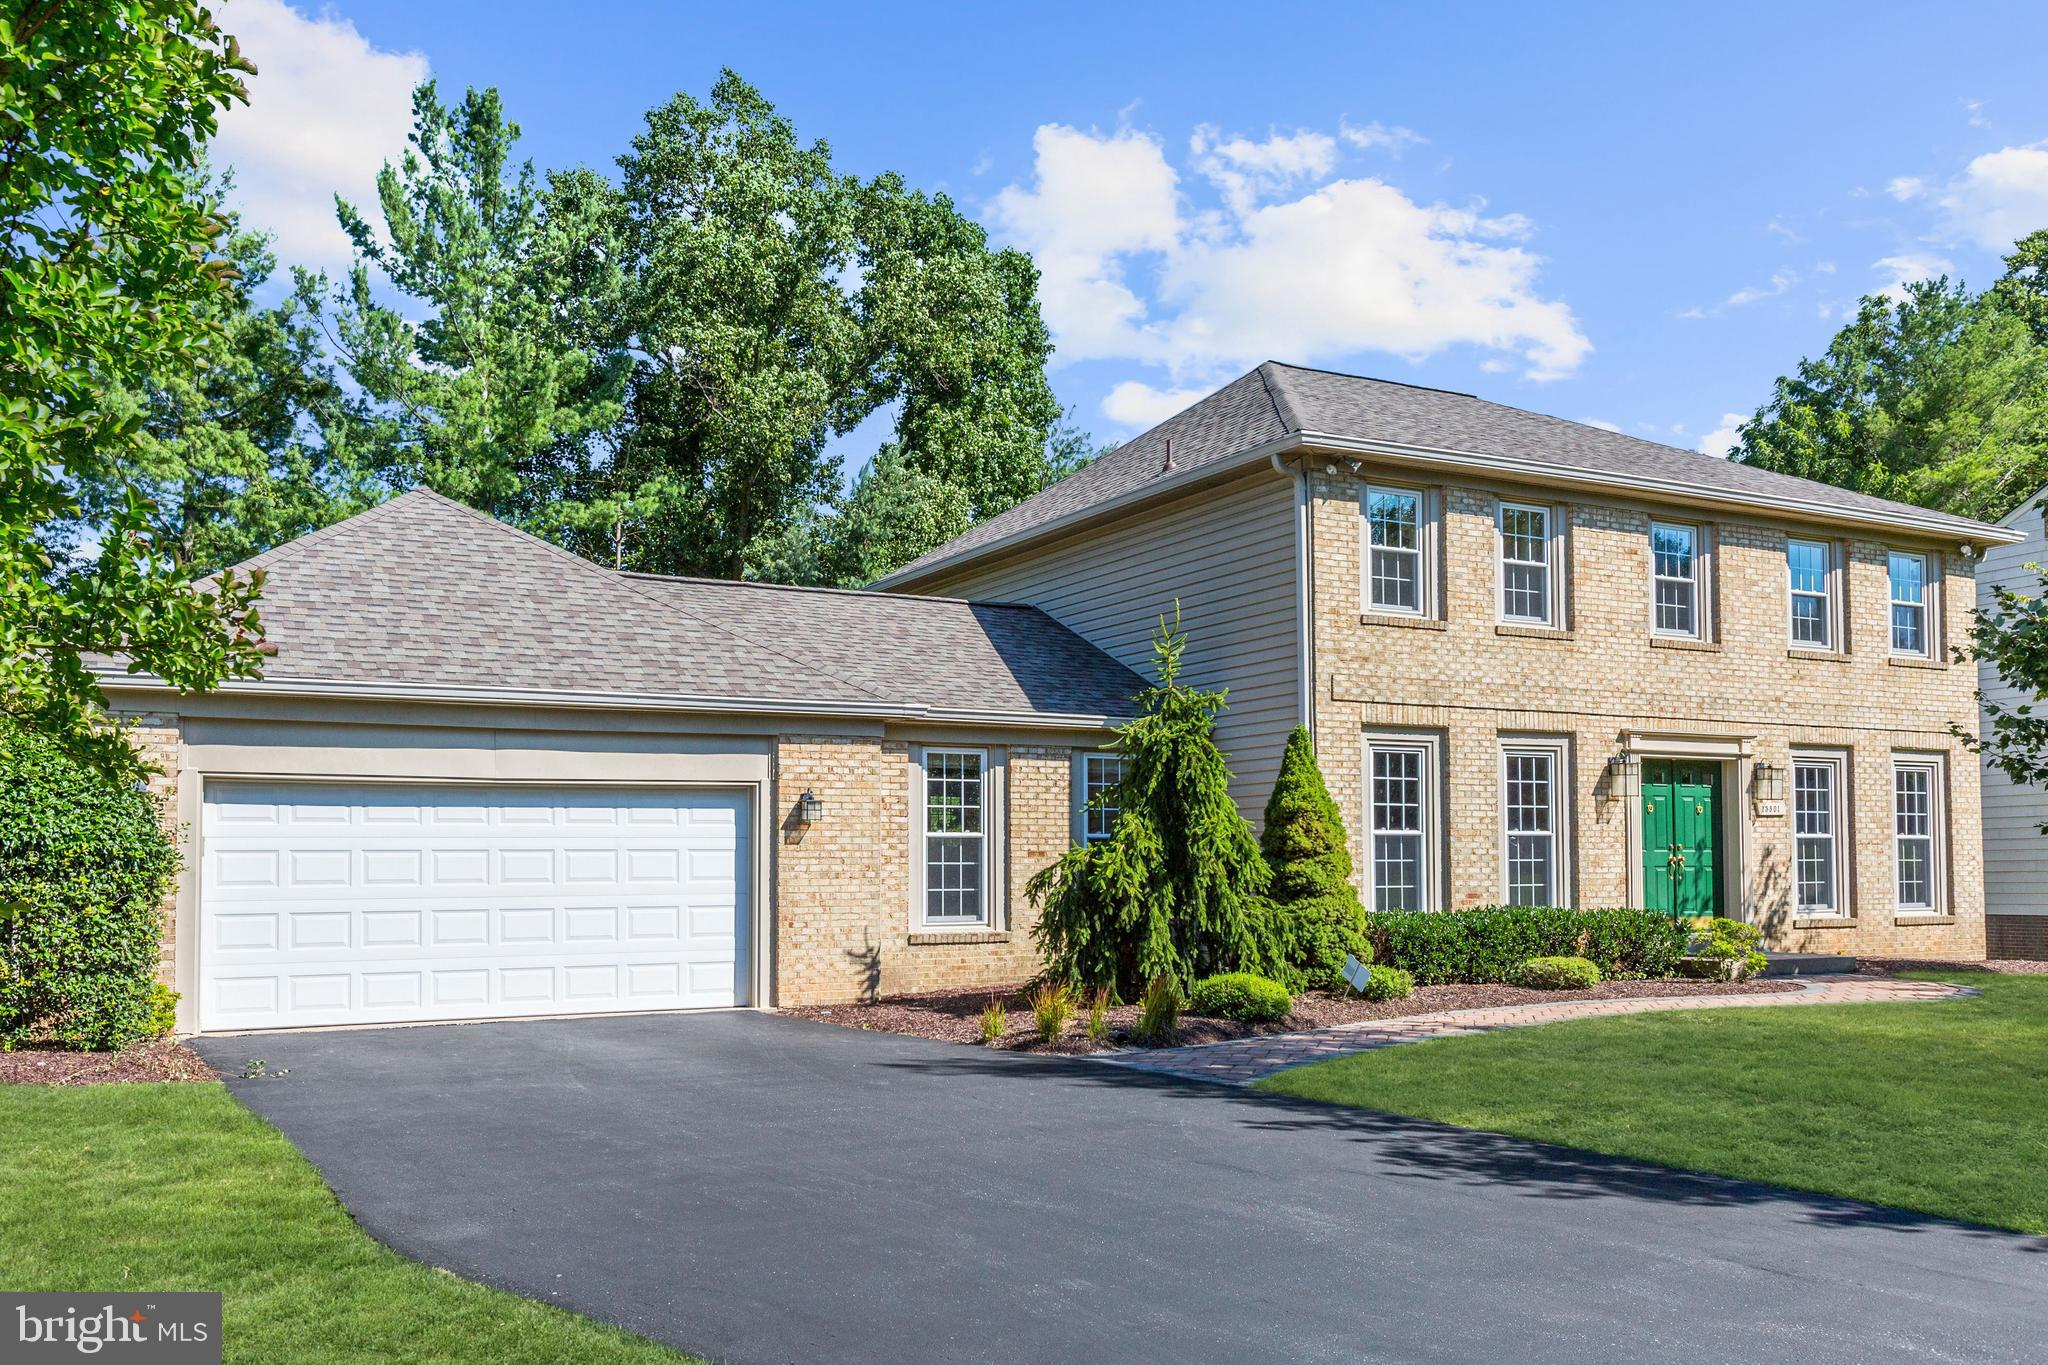 13801 TOWN LINE ROAD, SILVER SPRING, MD 20906